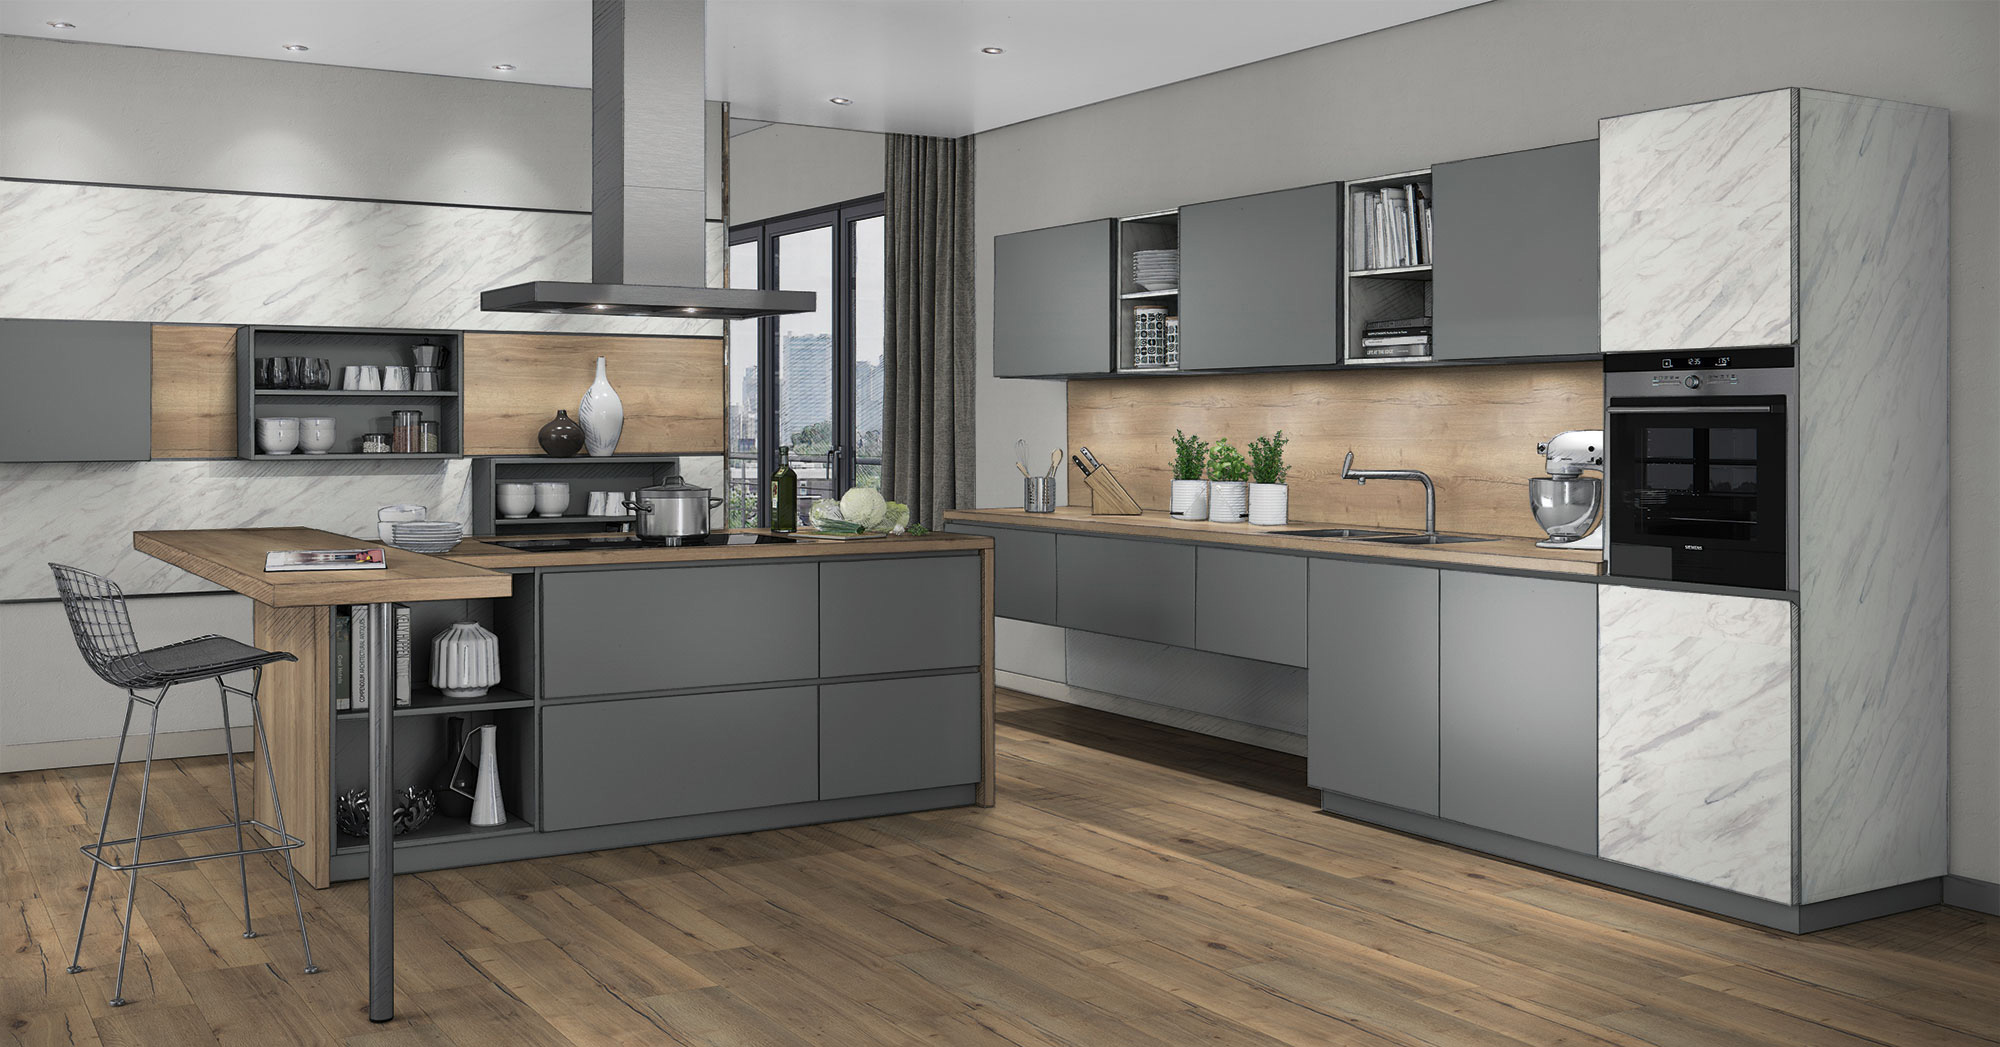 Egger S Decor Selections Enable Perfectly Coordinated Kitchen Designs